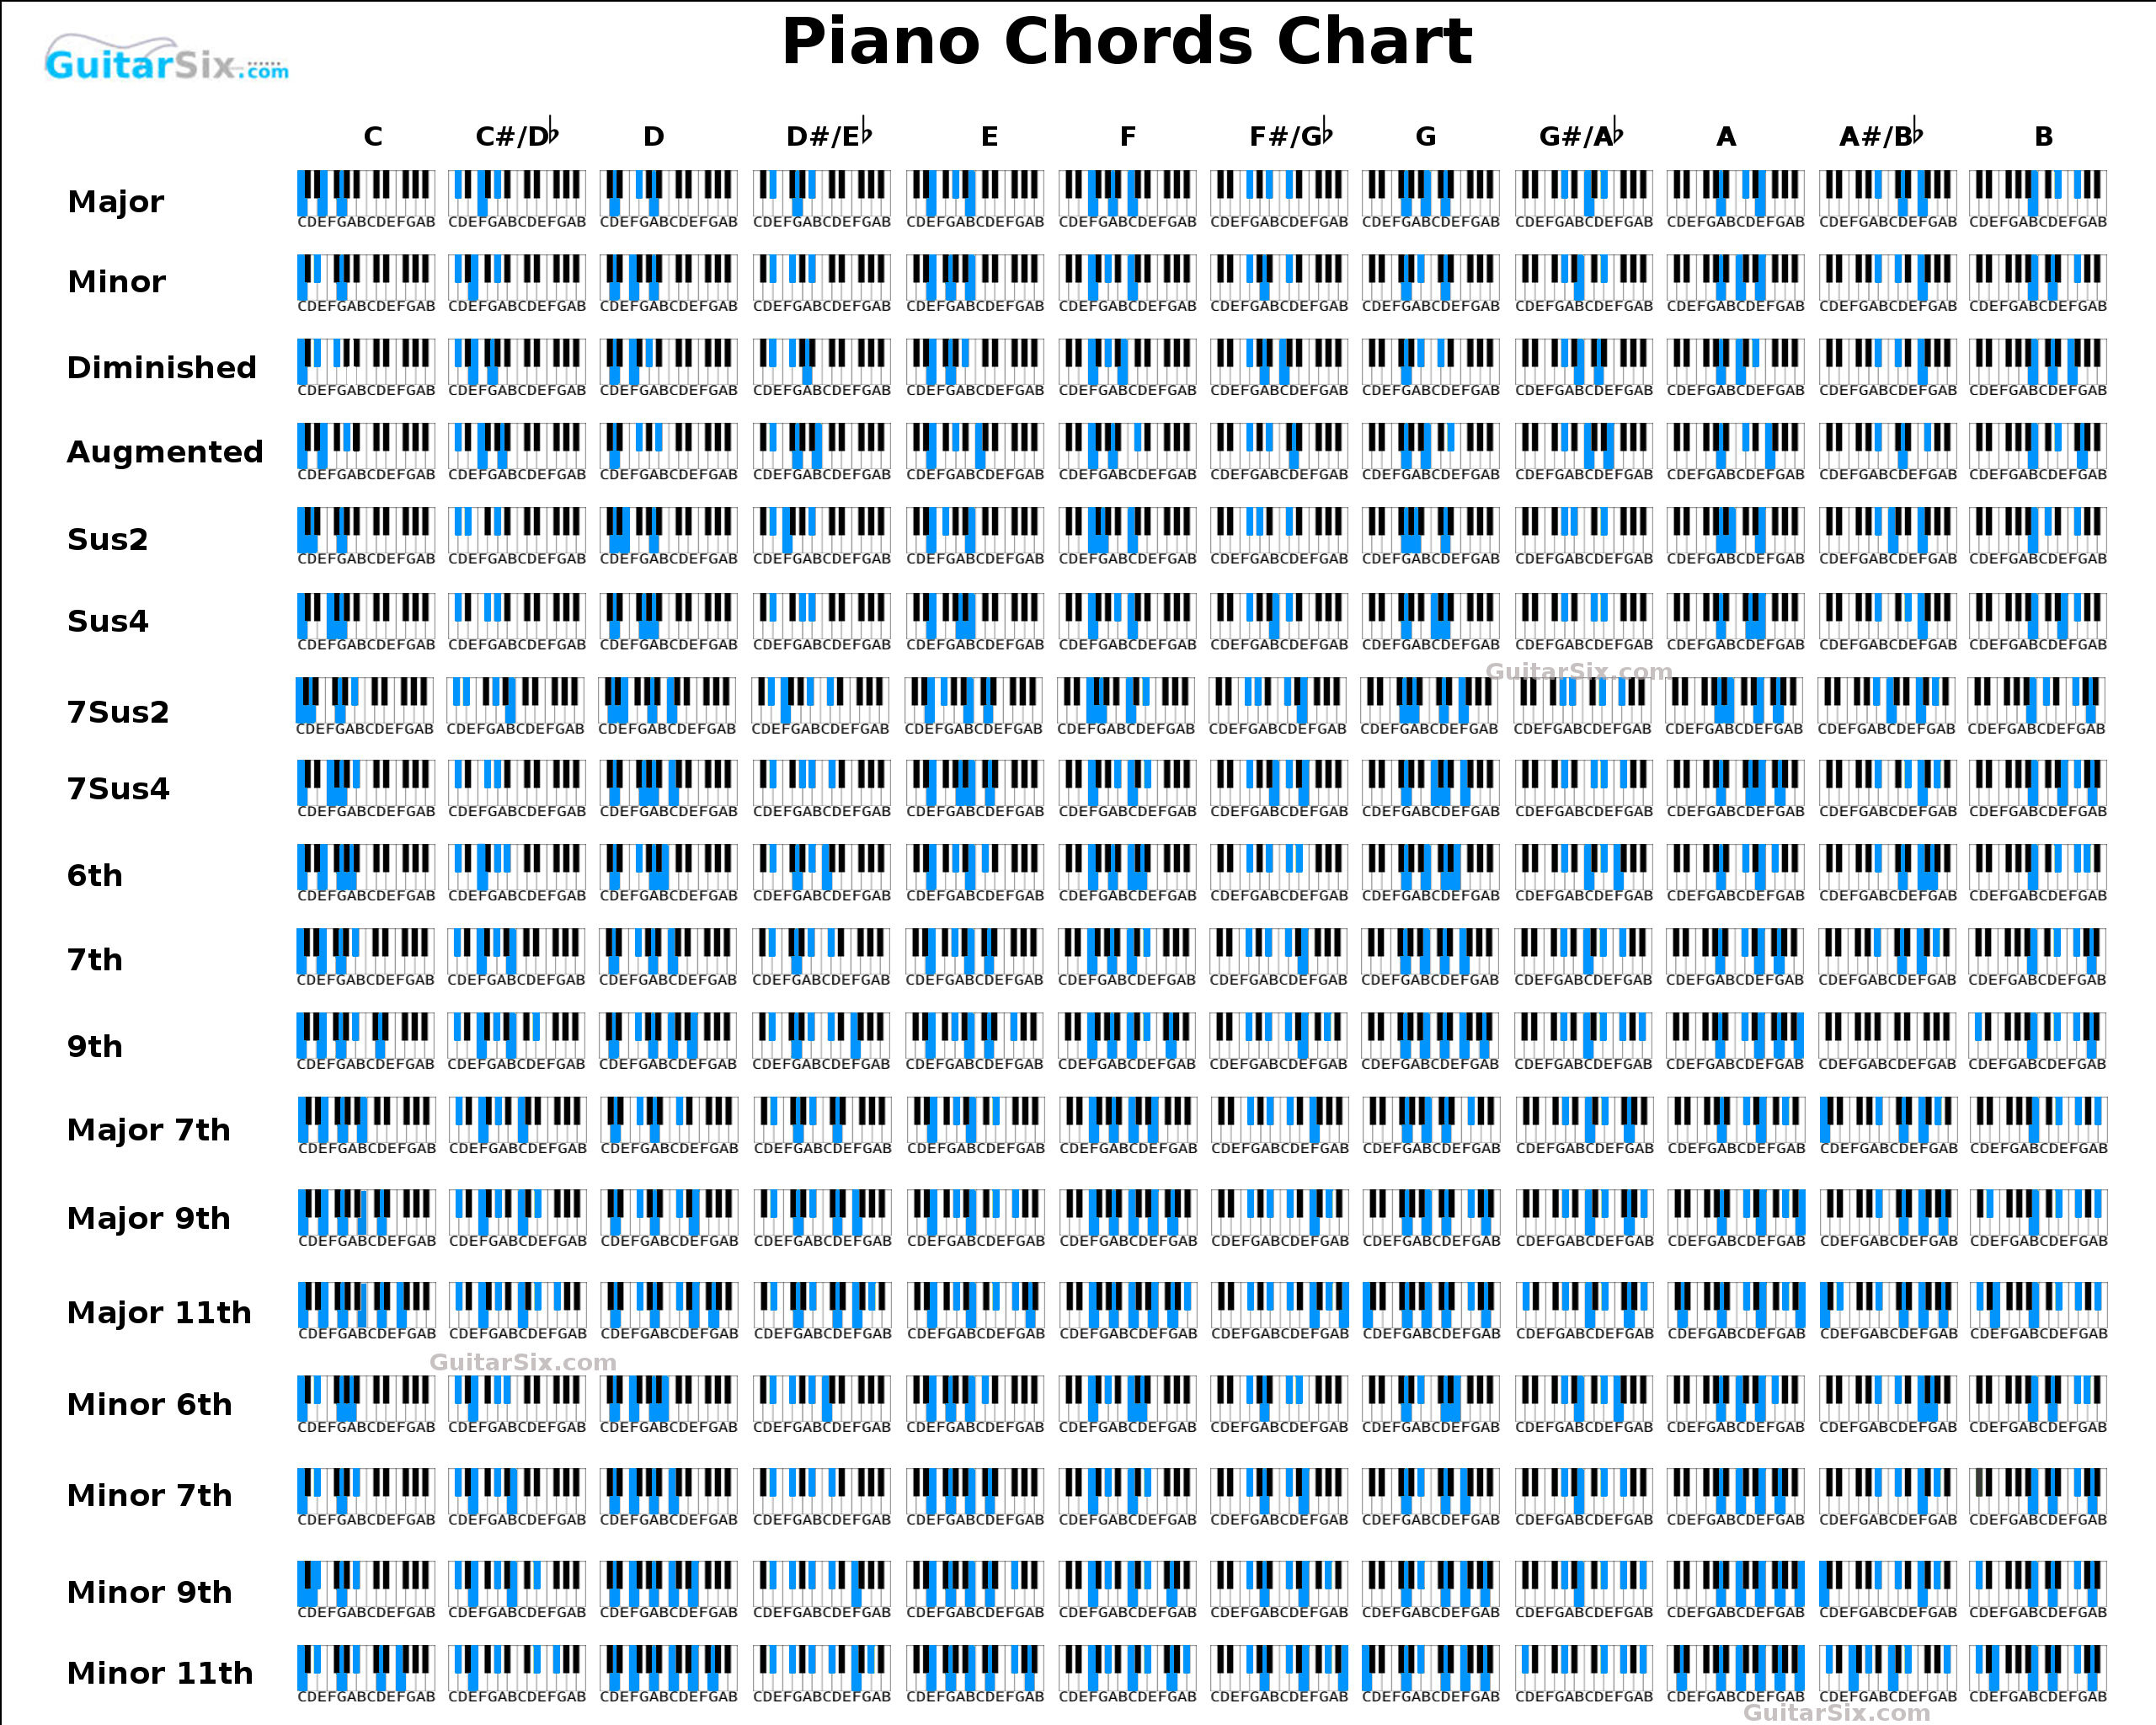 It is a graphic of Universal Printable Piano Chord Charts